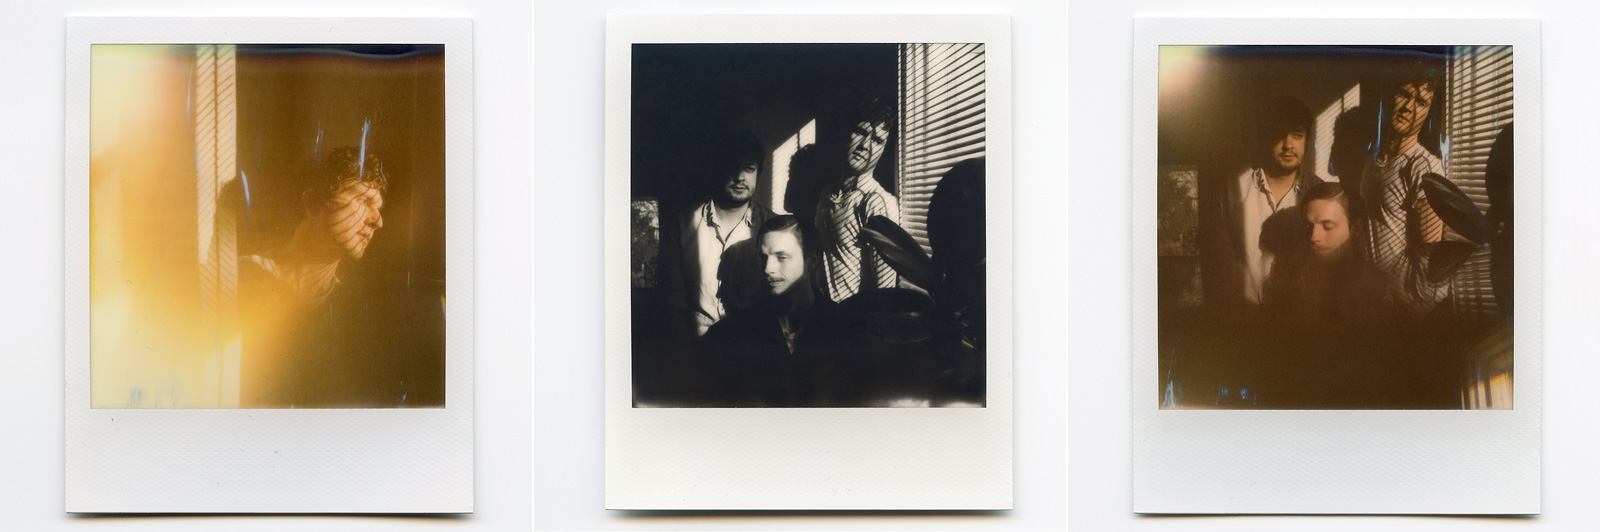 Portland Music Photographer - Polaroids of the band Lorain